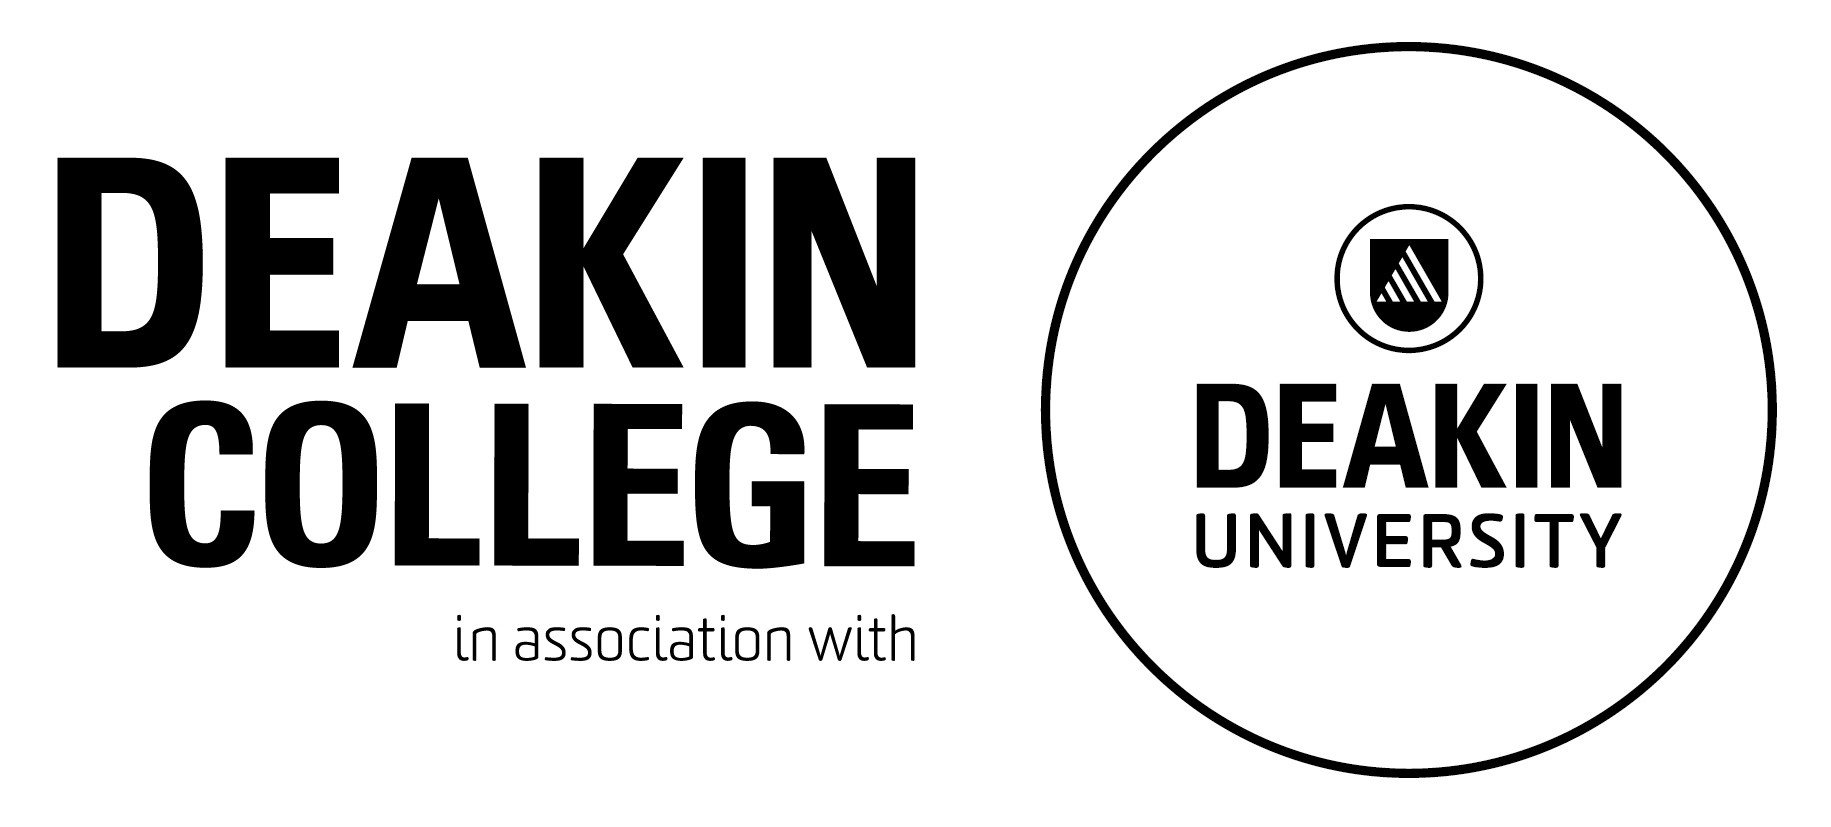 Deakin College Deakin University